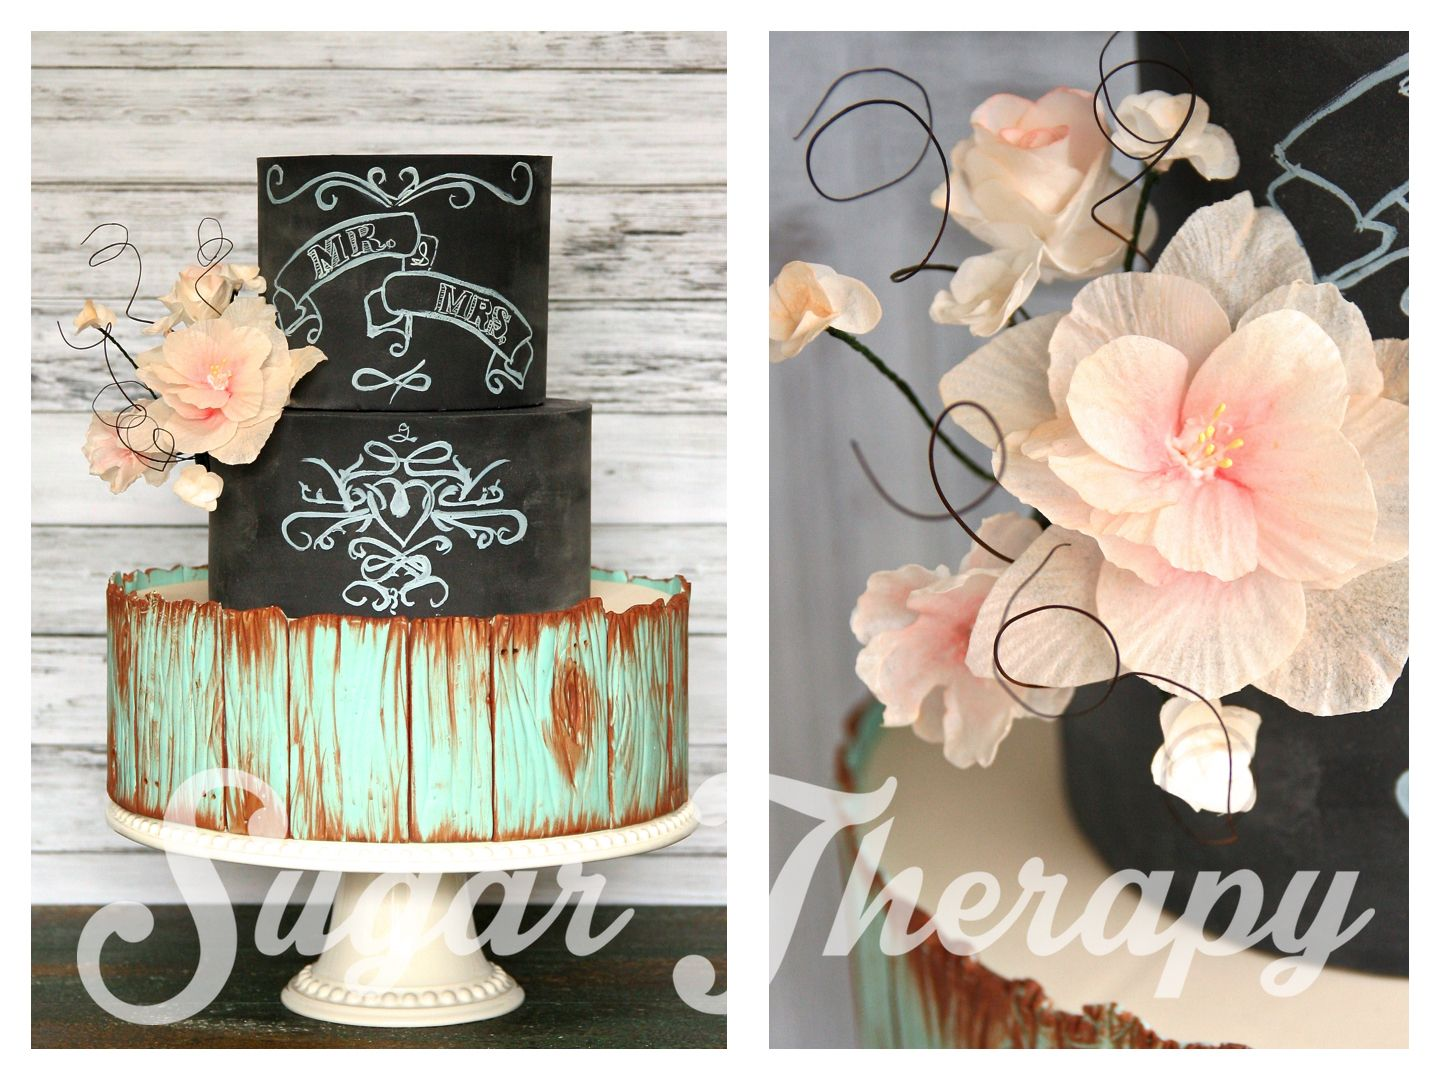 Rustic Teal Wood And Chalkboard Wedding Cake With Edible Hand Made